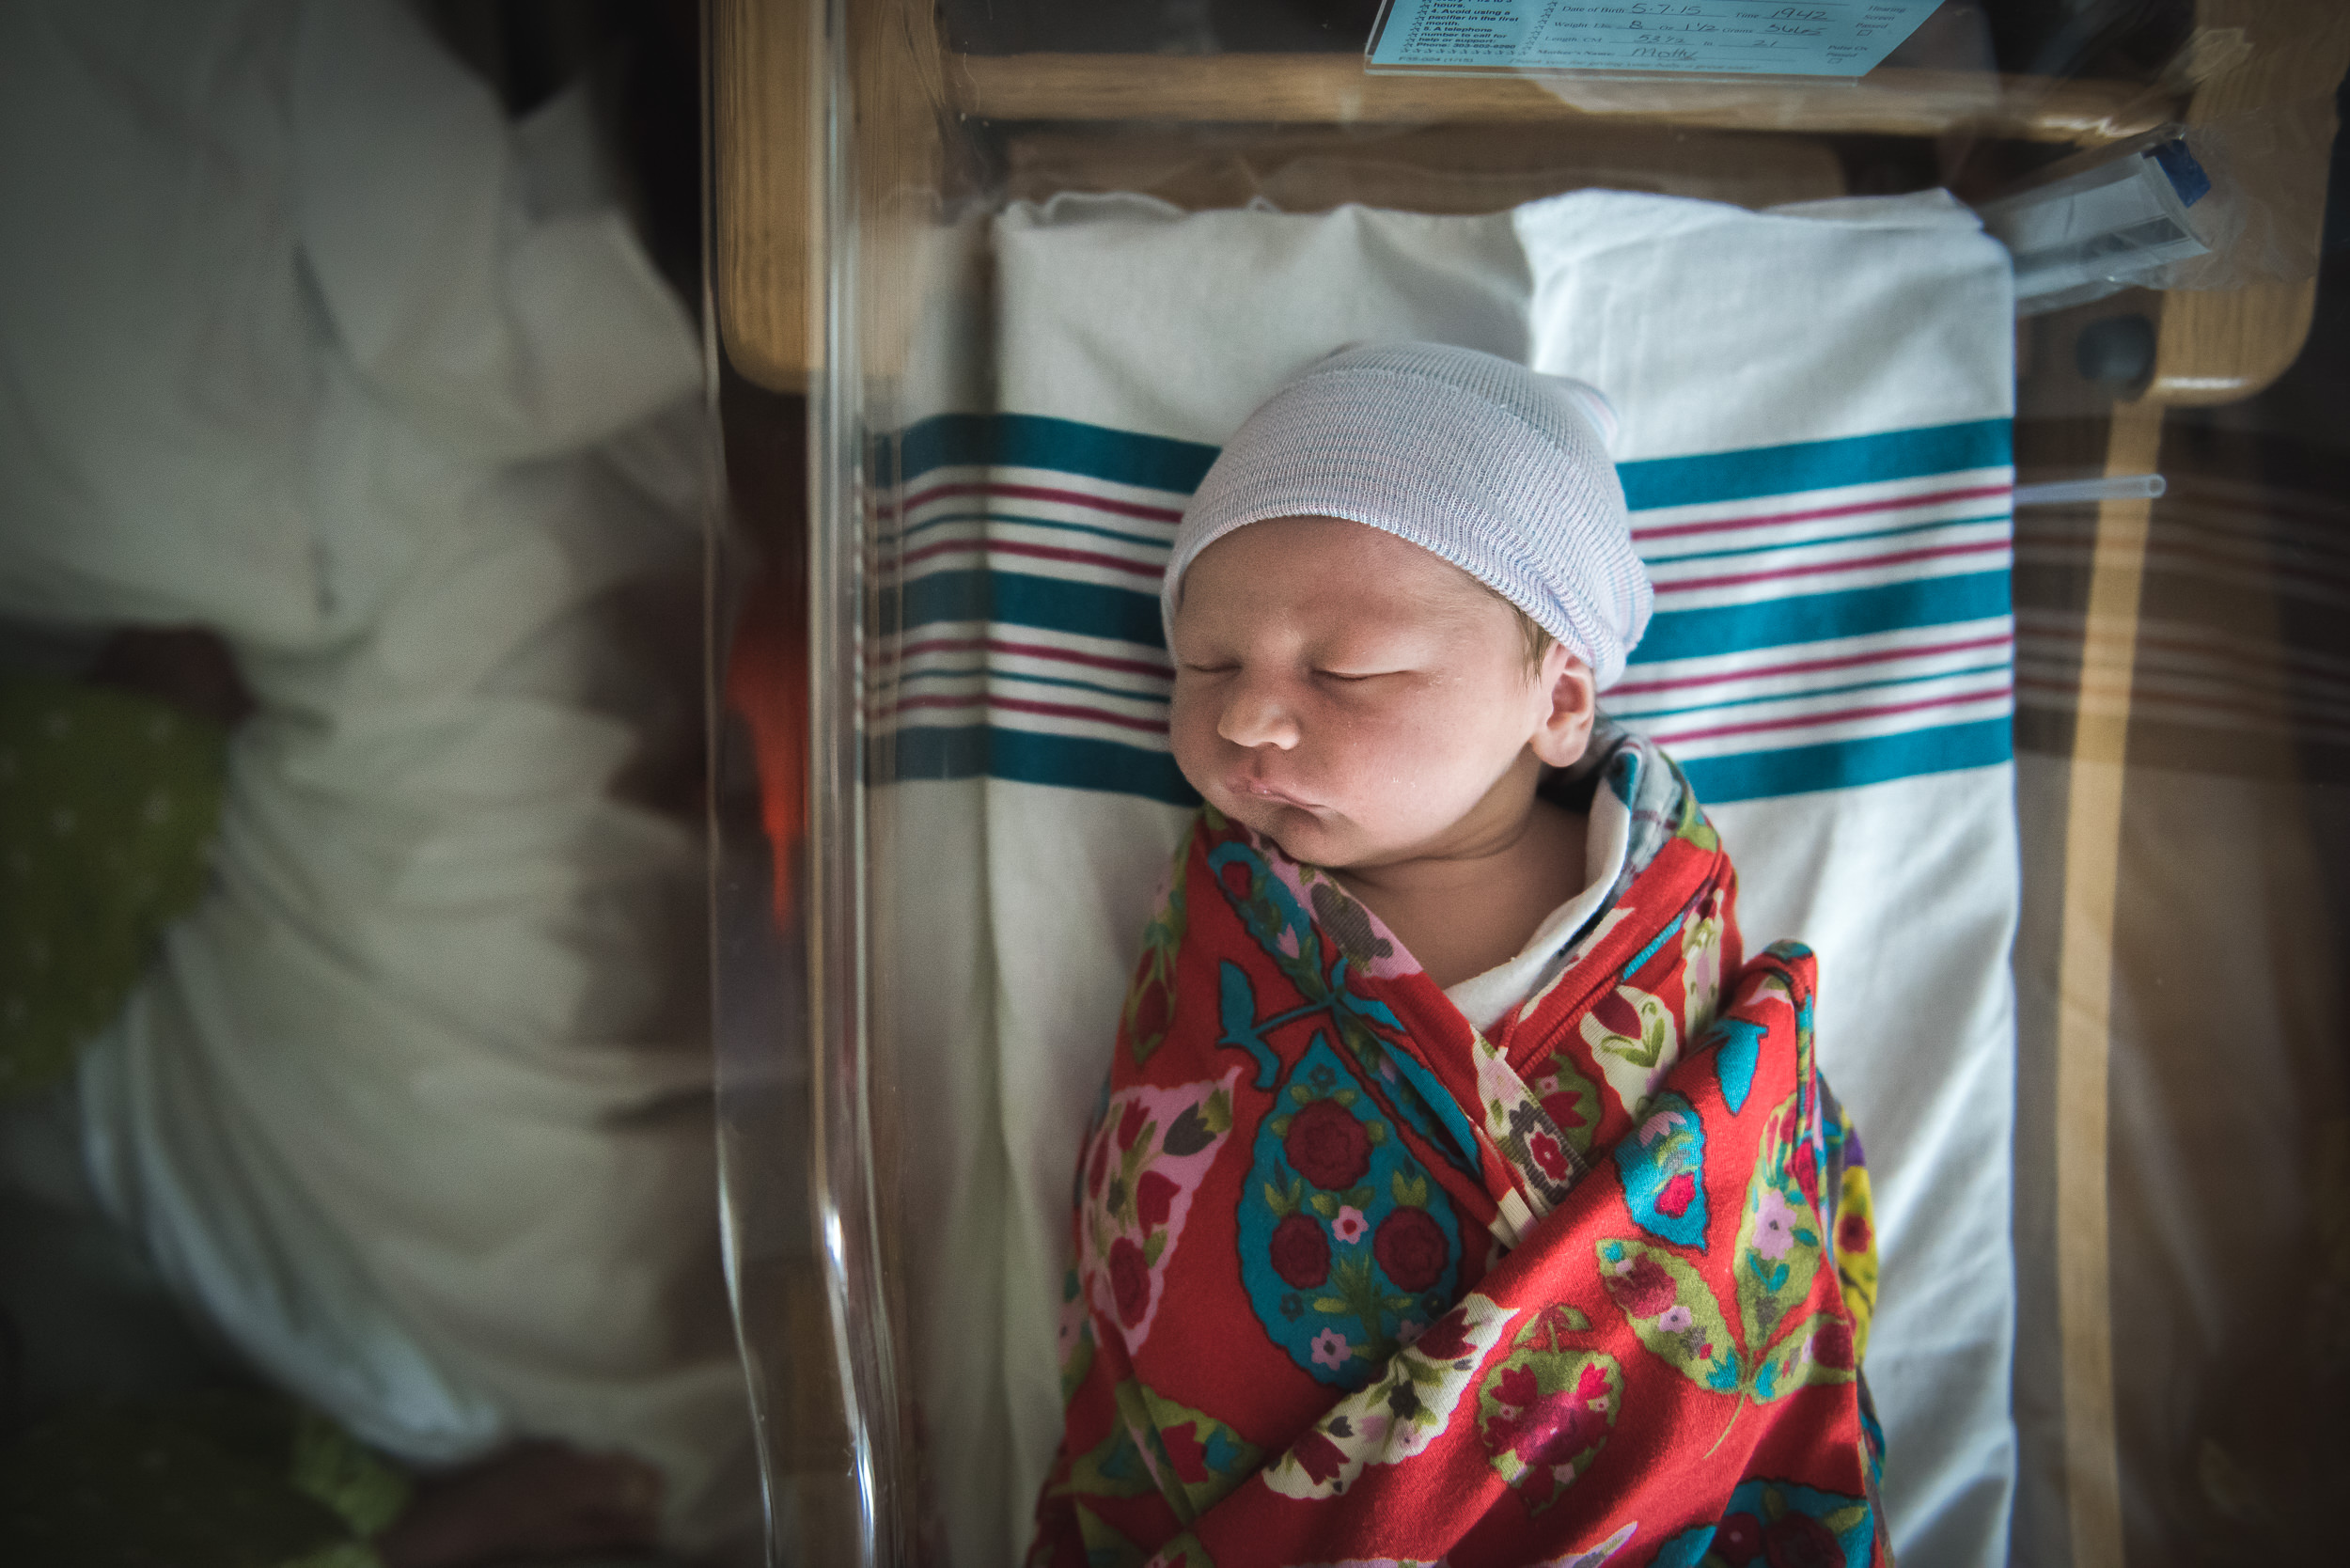 Molly Rees Photo - Documentary Newborn Photography in Denver, Colorado - overhead portrait of baby in hospital bassinet by M. Menschel